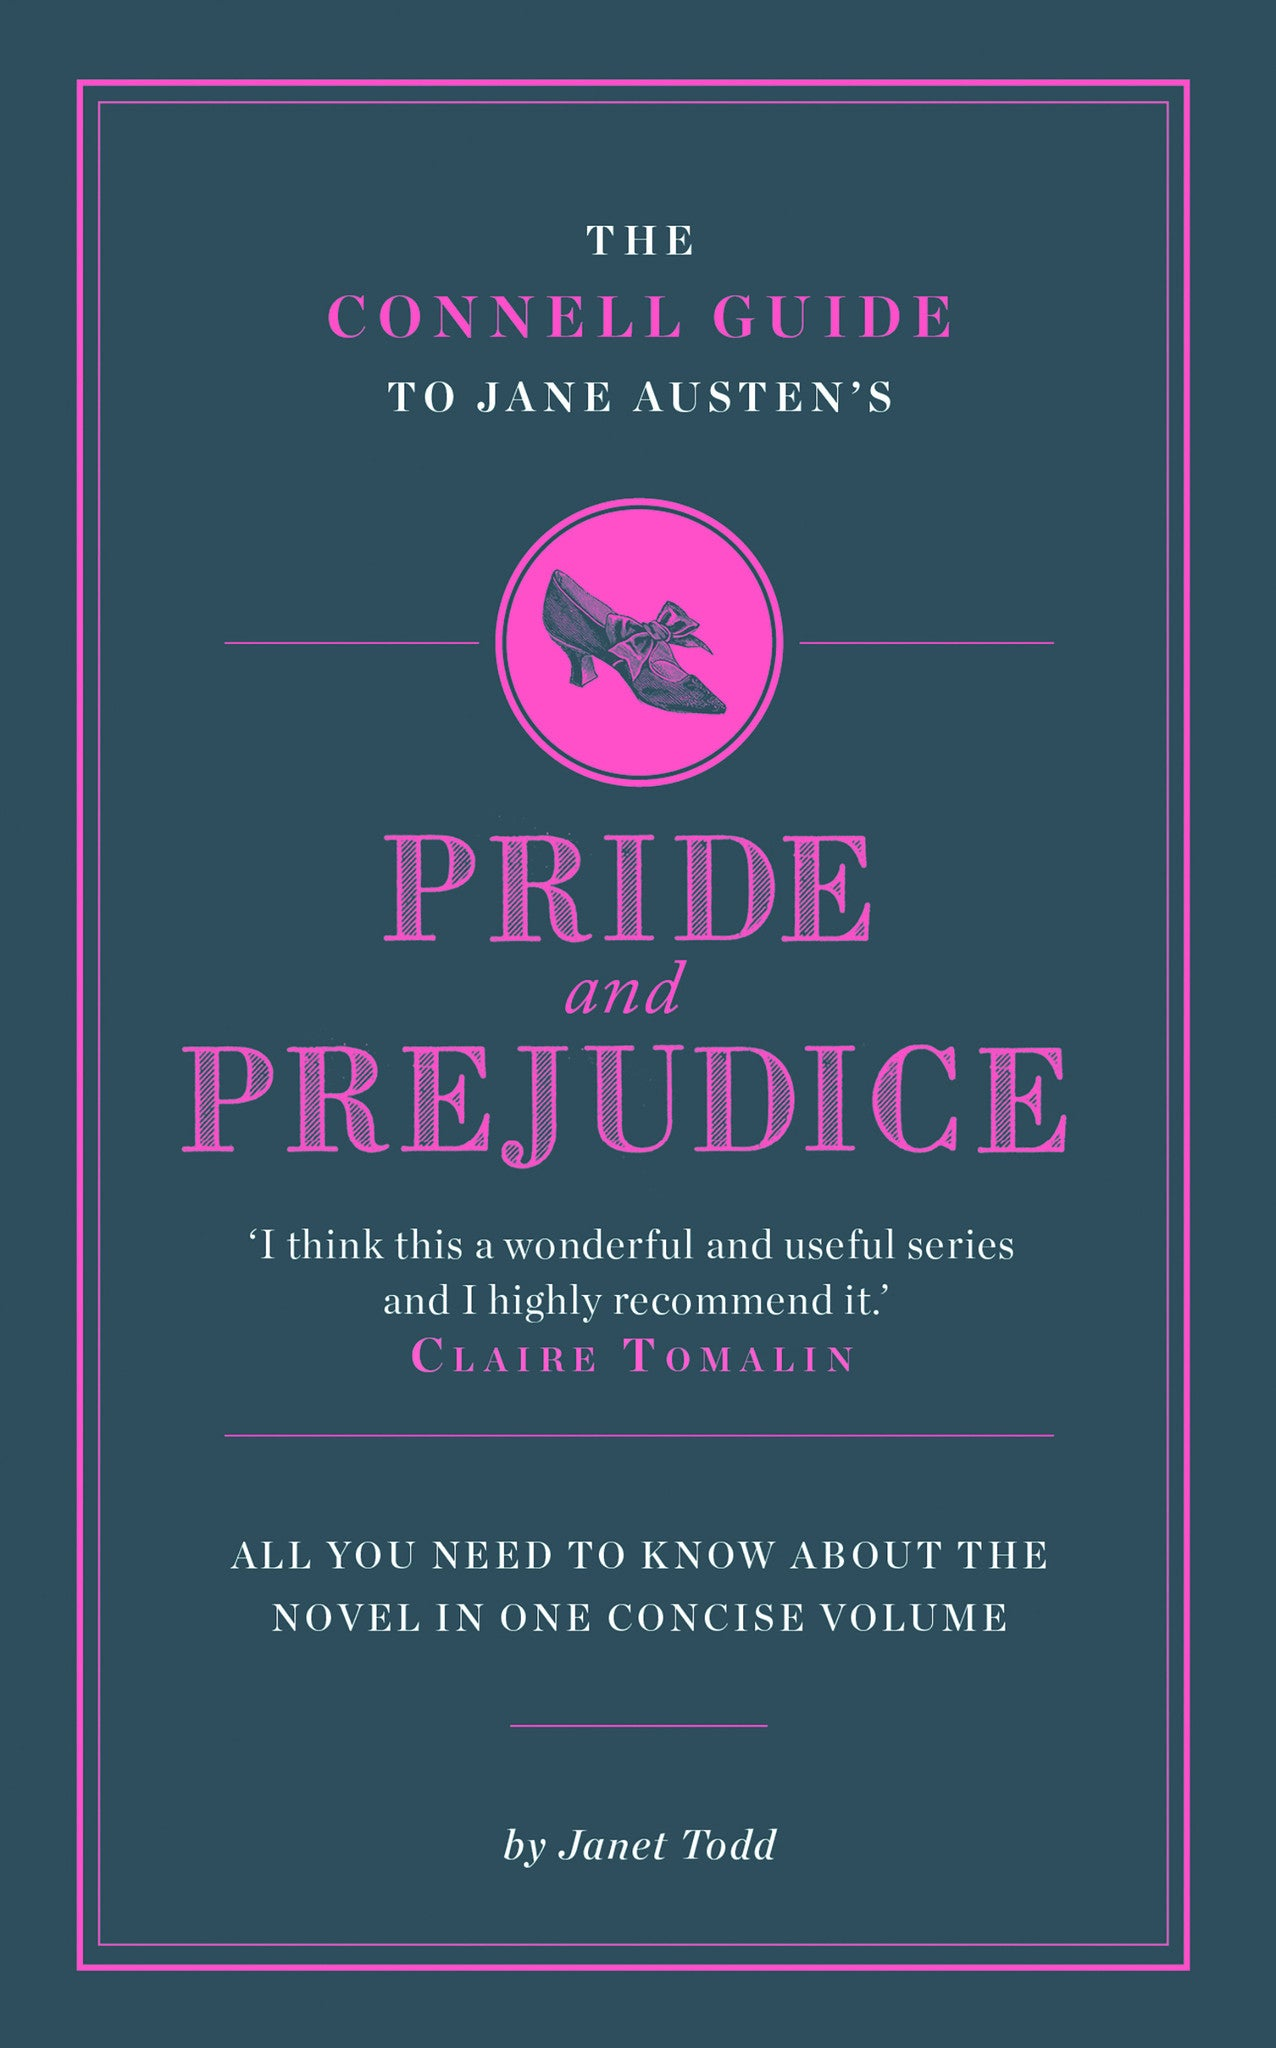 jane austen pride and prejudice analytical essay How does austen present the relationship between darcy and elizabethawareness of social status is a central theme of the novel the pride and prejudice of both darcy and lizzy, and the strong-willed stubbornness of their characters make them an.